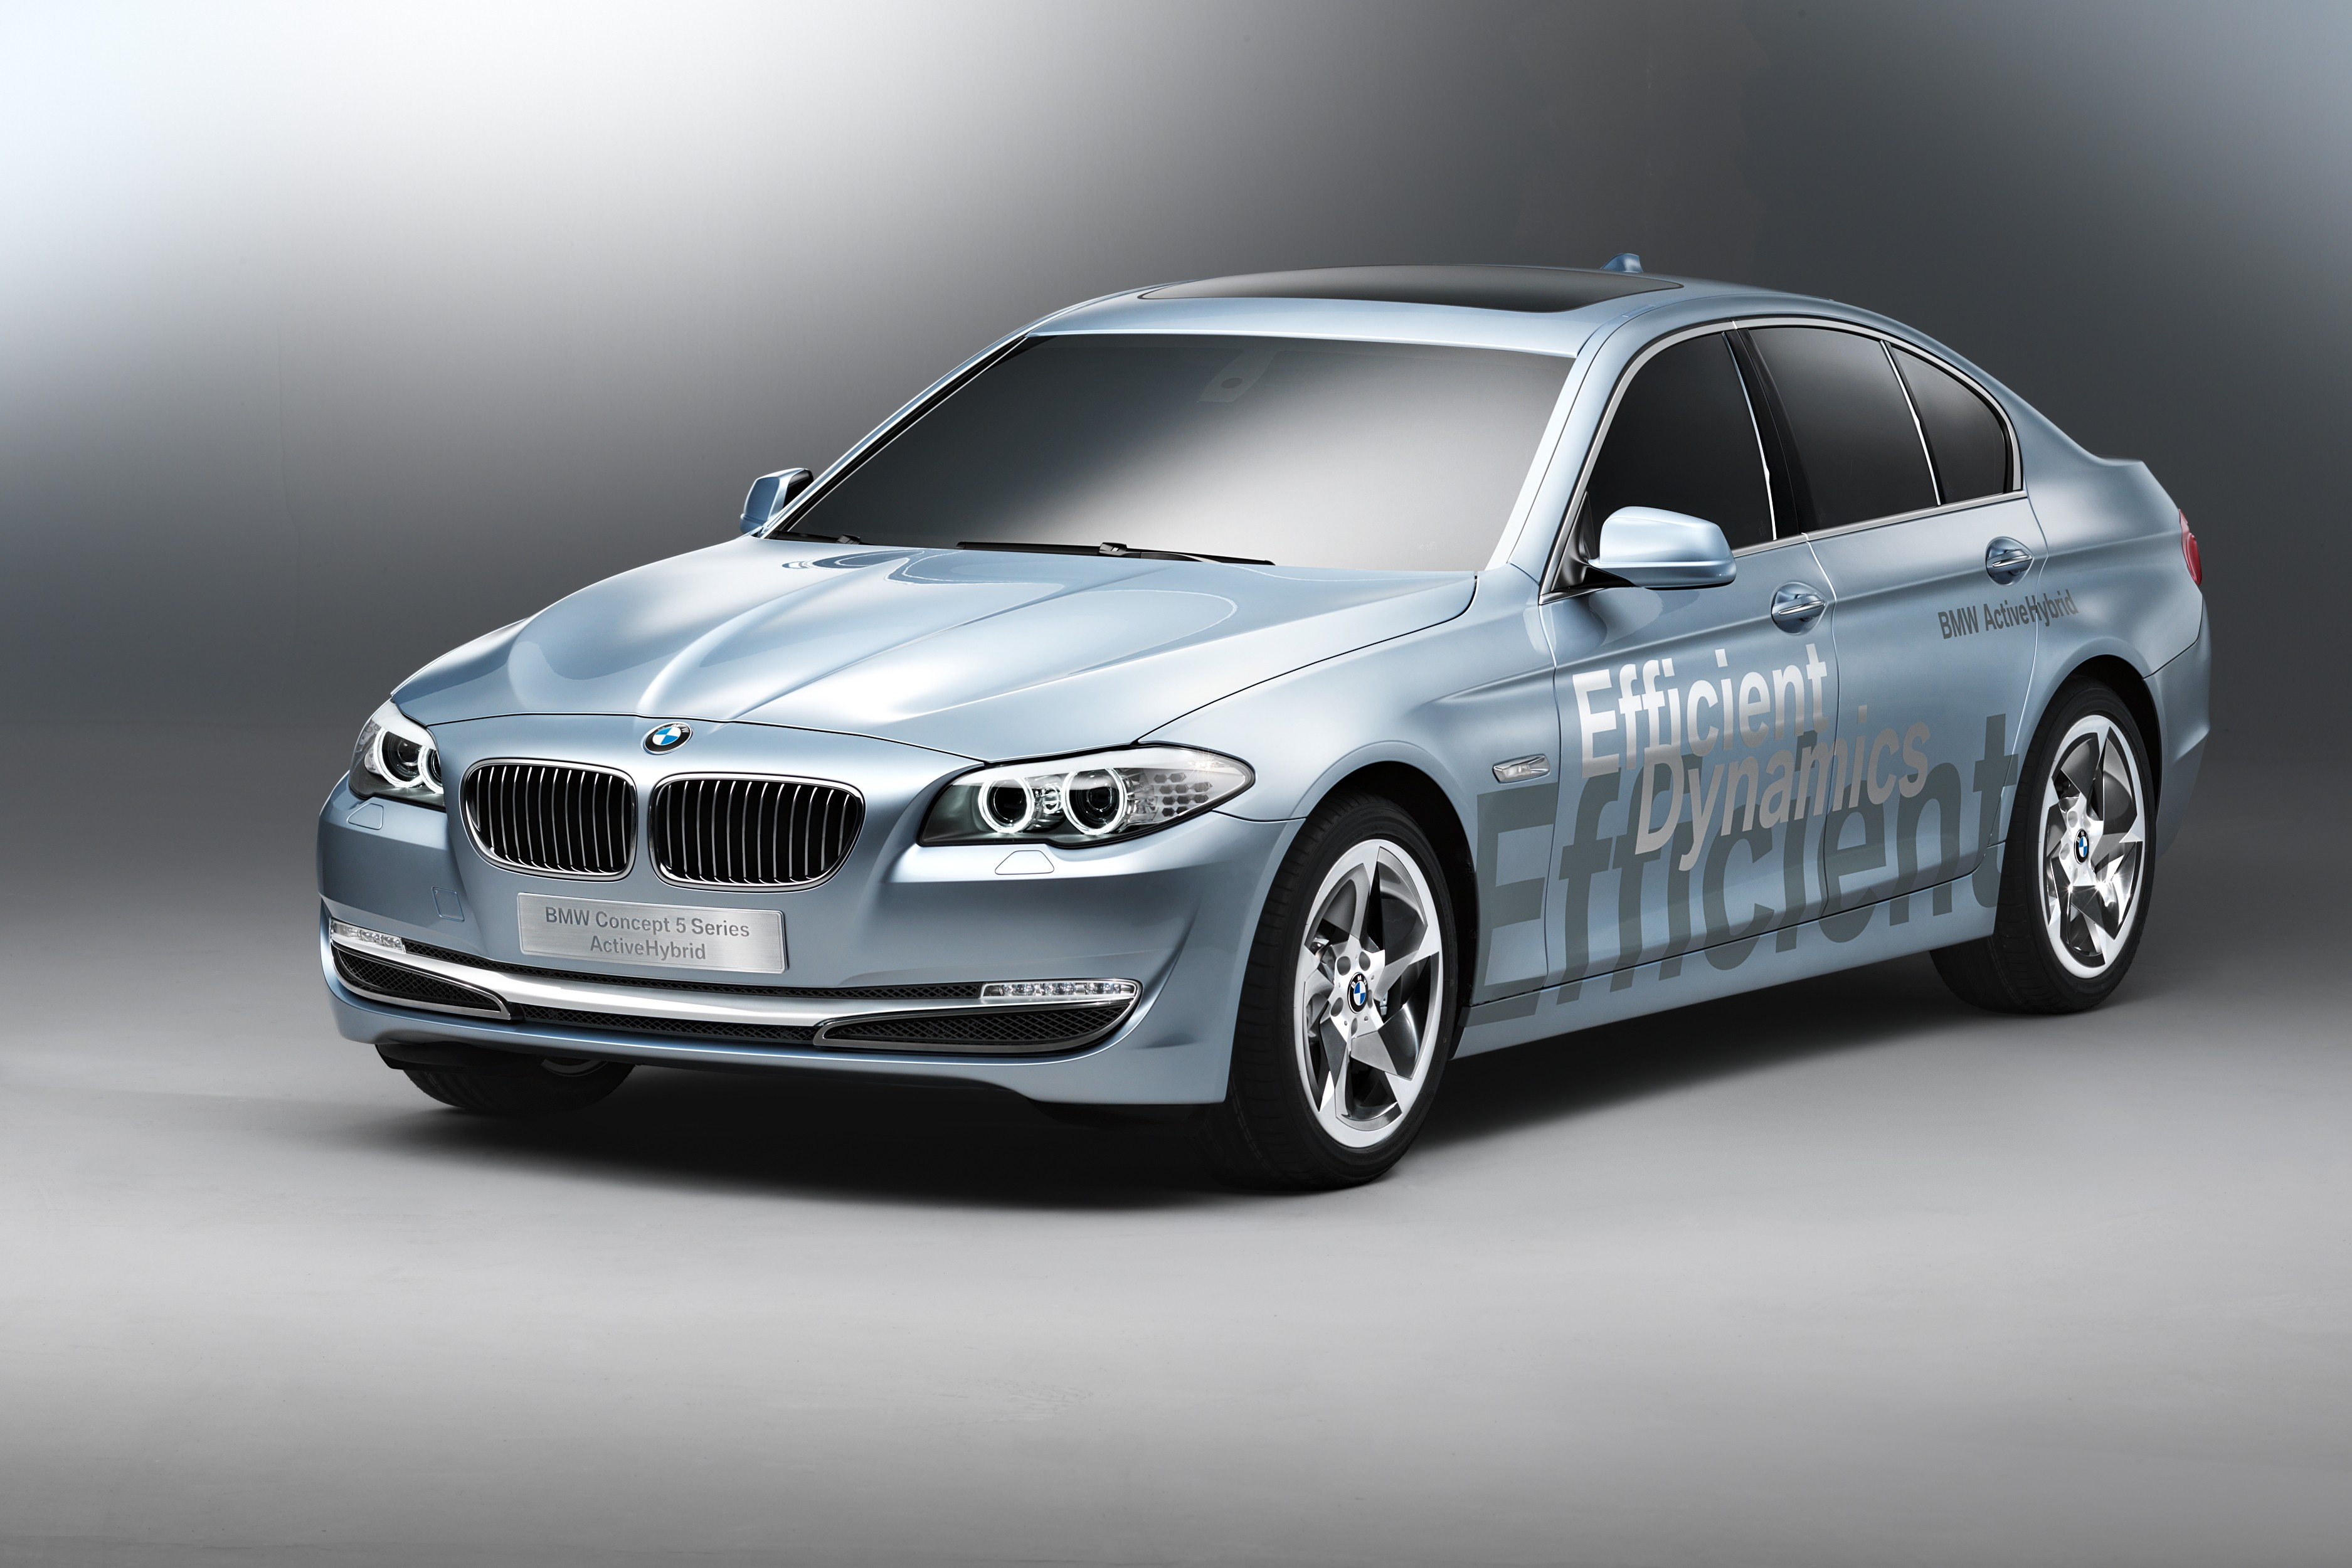 BMW 5 Series: The concept